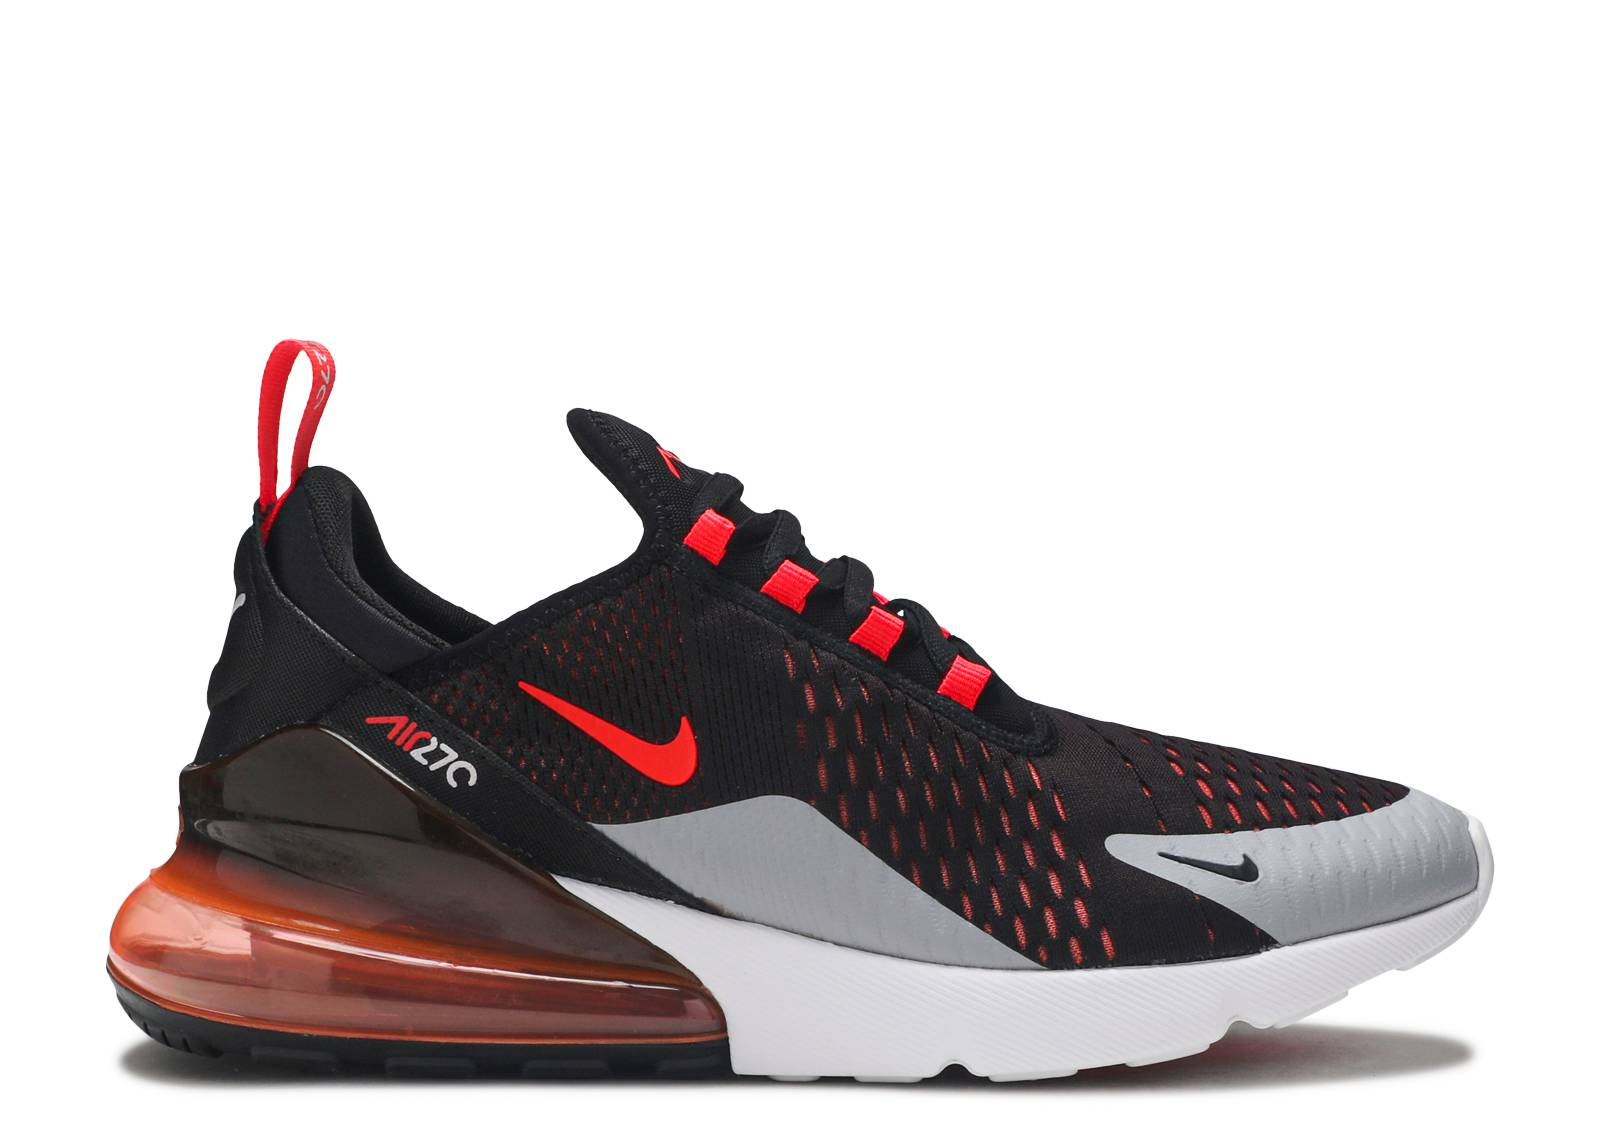 new style 4c34a b3263 Air Max 270 - Nike - ah8050 015 - black/bright crimson | Flight Club